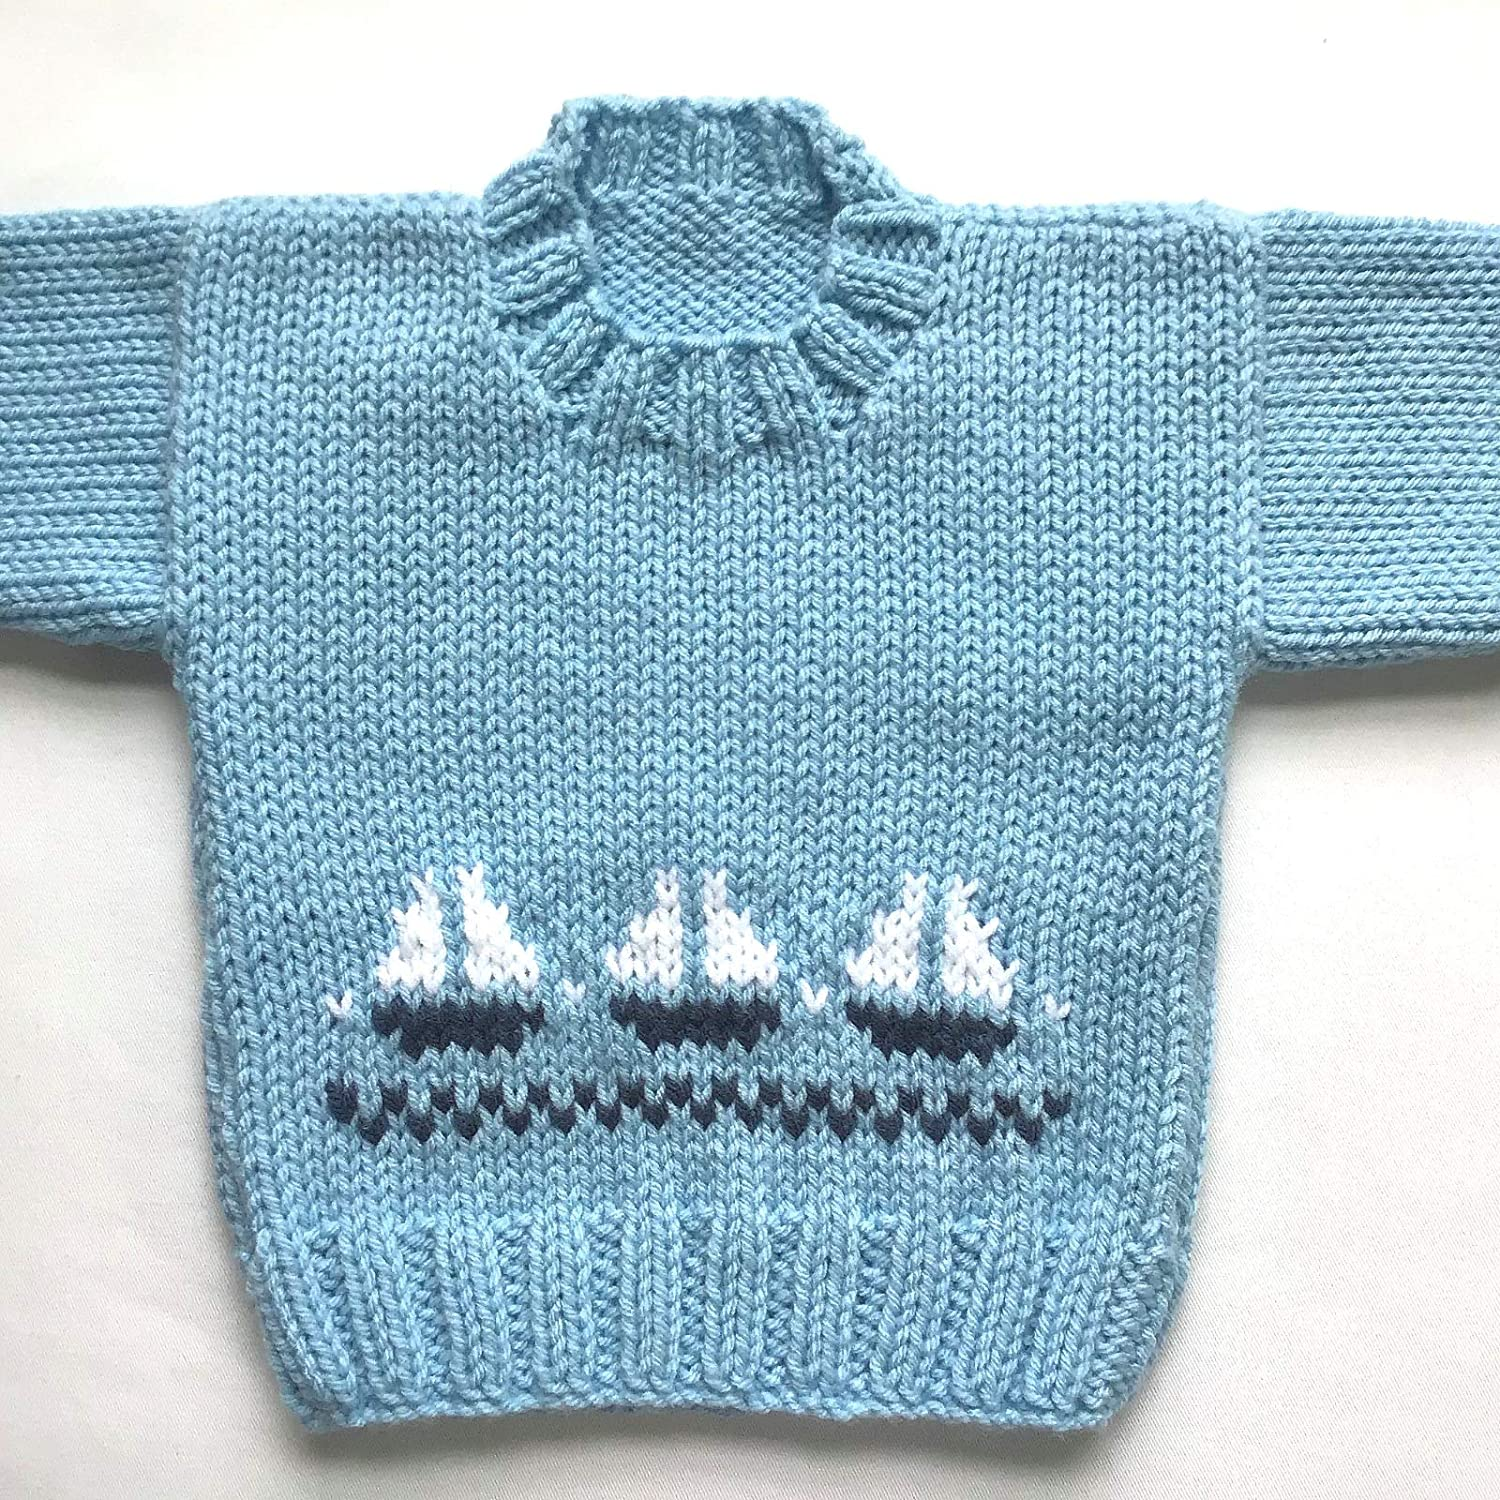 384daf31f Amazon.com  6 to 12 months baby boy sailboat sweater  Handmade